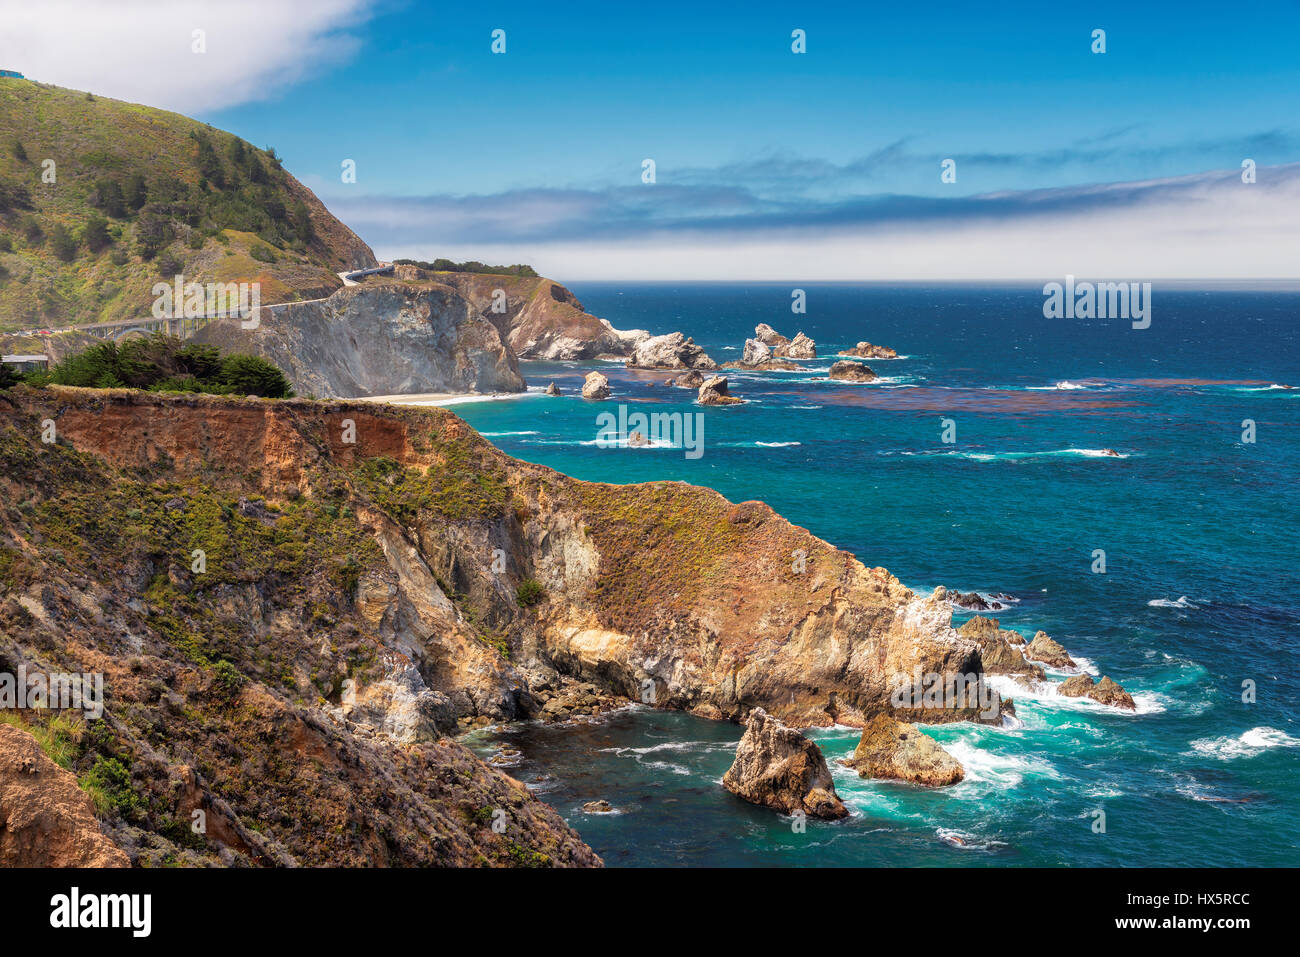 Beautiful View of the California Coastline along State Road 1. - Stock Image